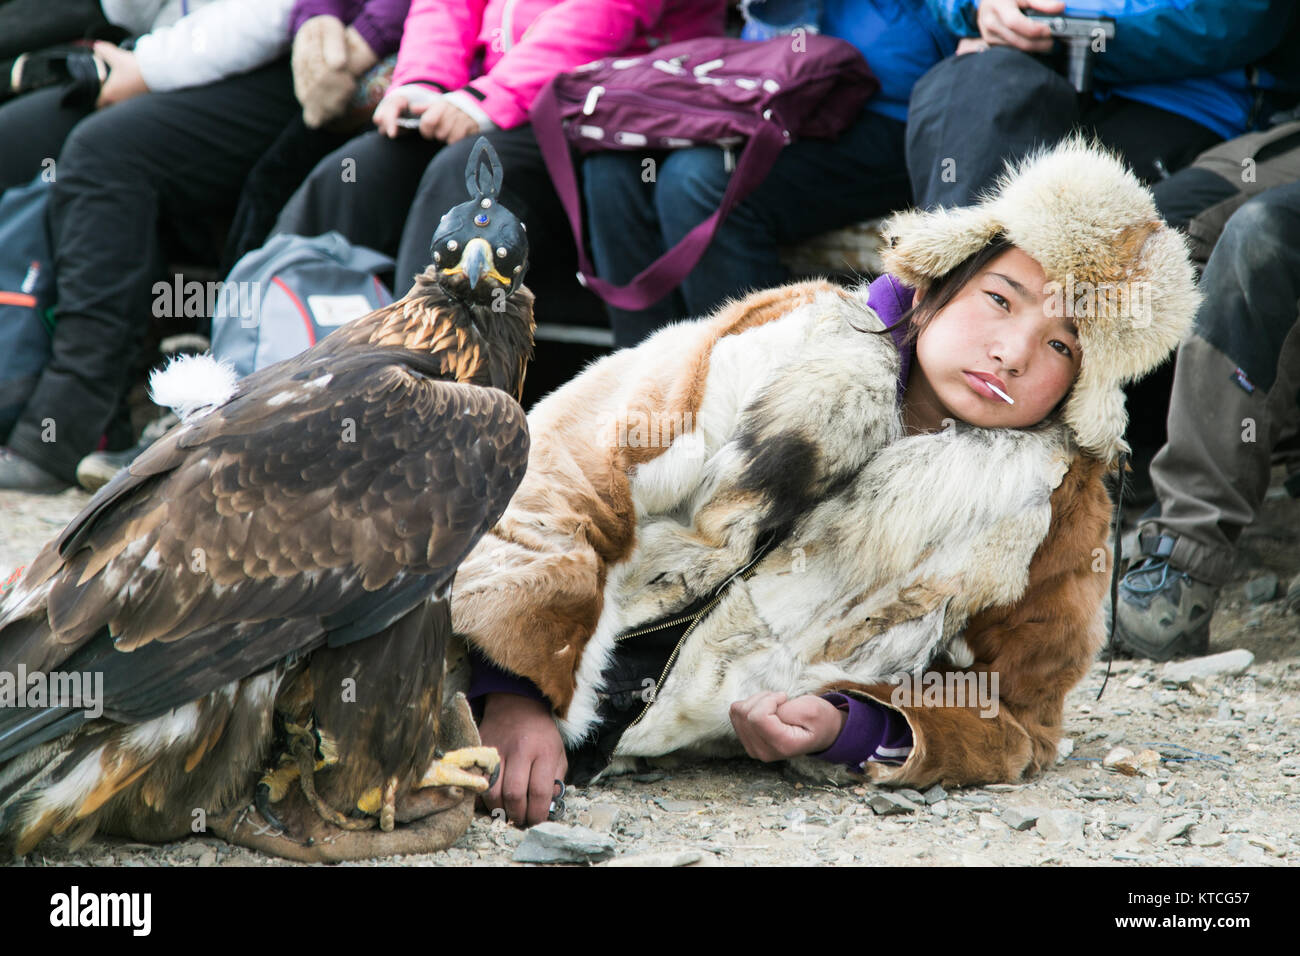 Young eagle huntress eats a lollipop while she waits her turn at the Golden Eagle Festival in Mongolia - Stock Image